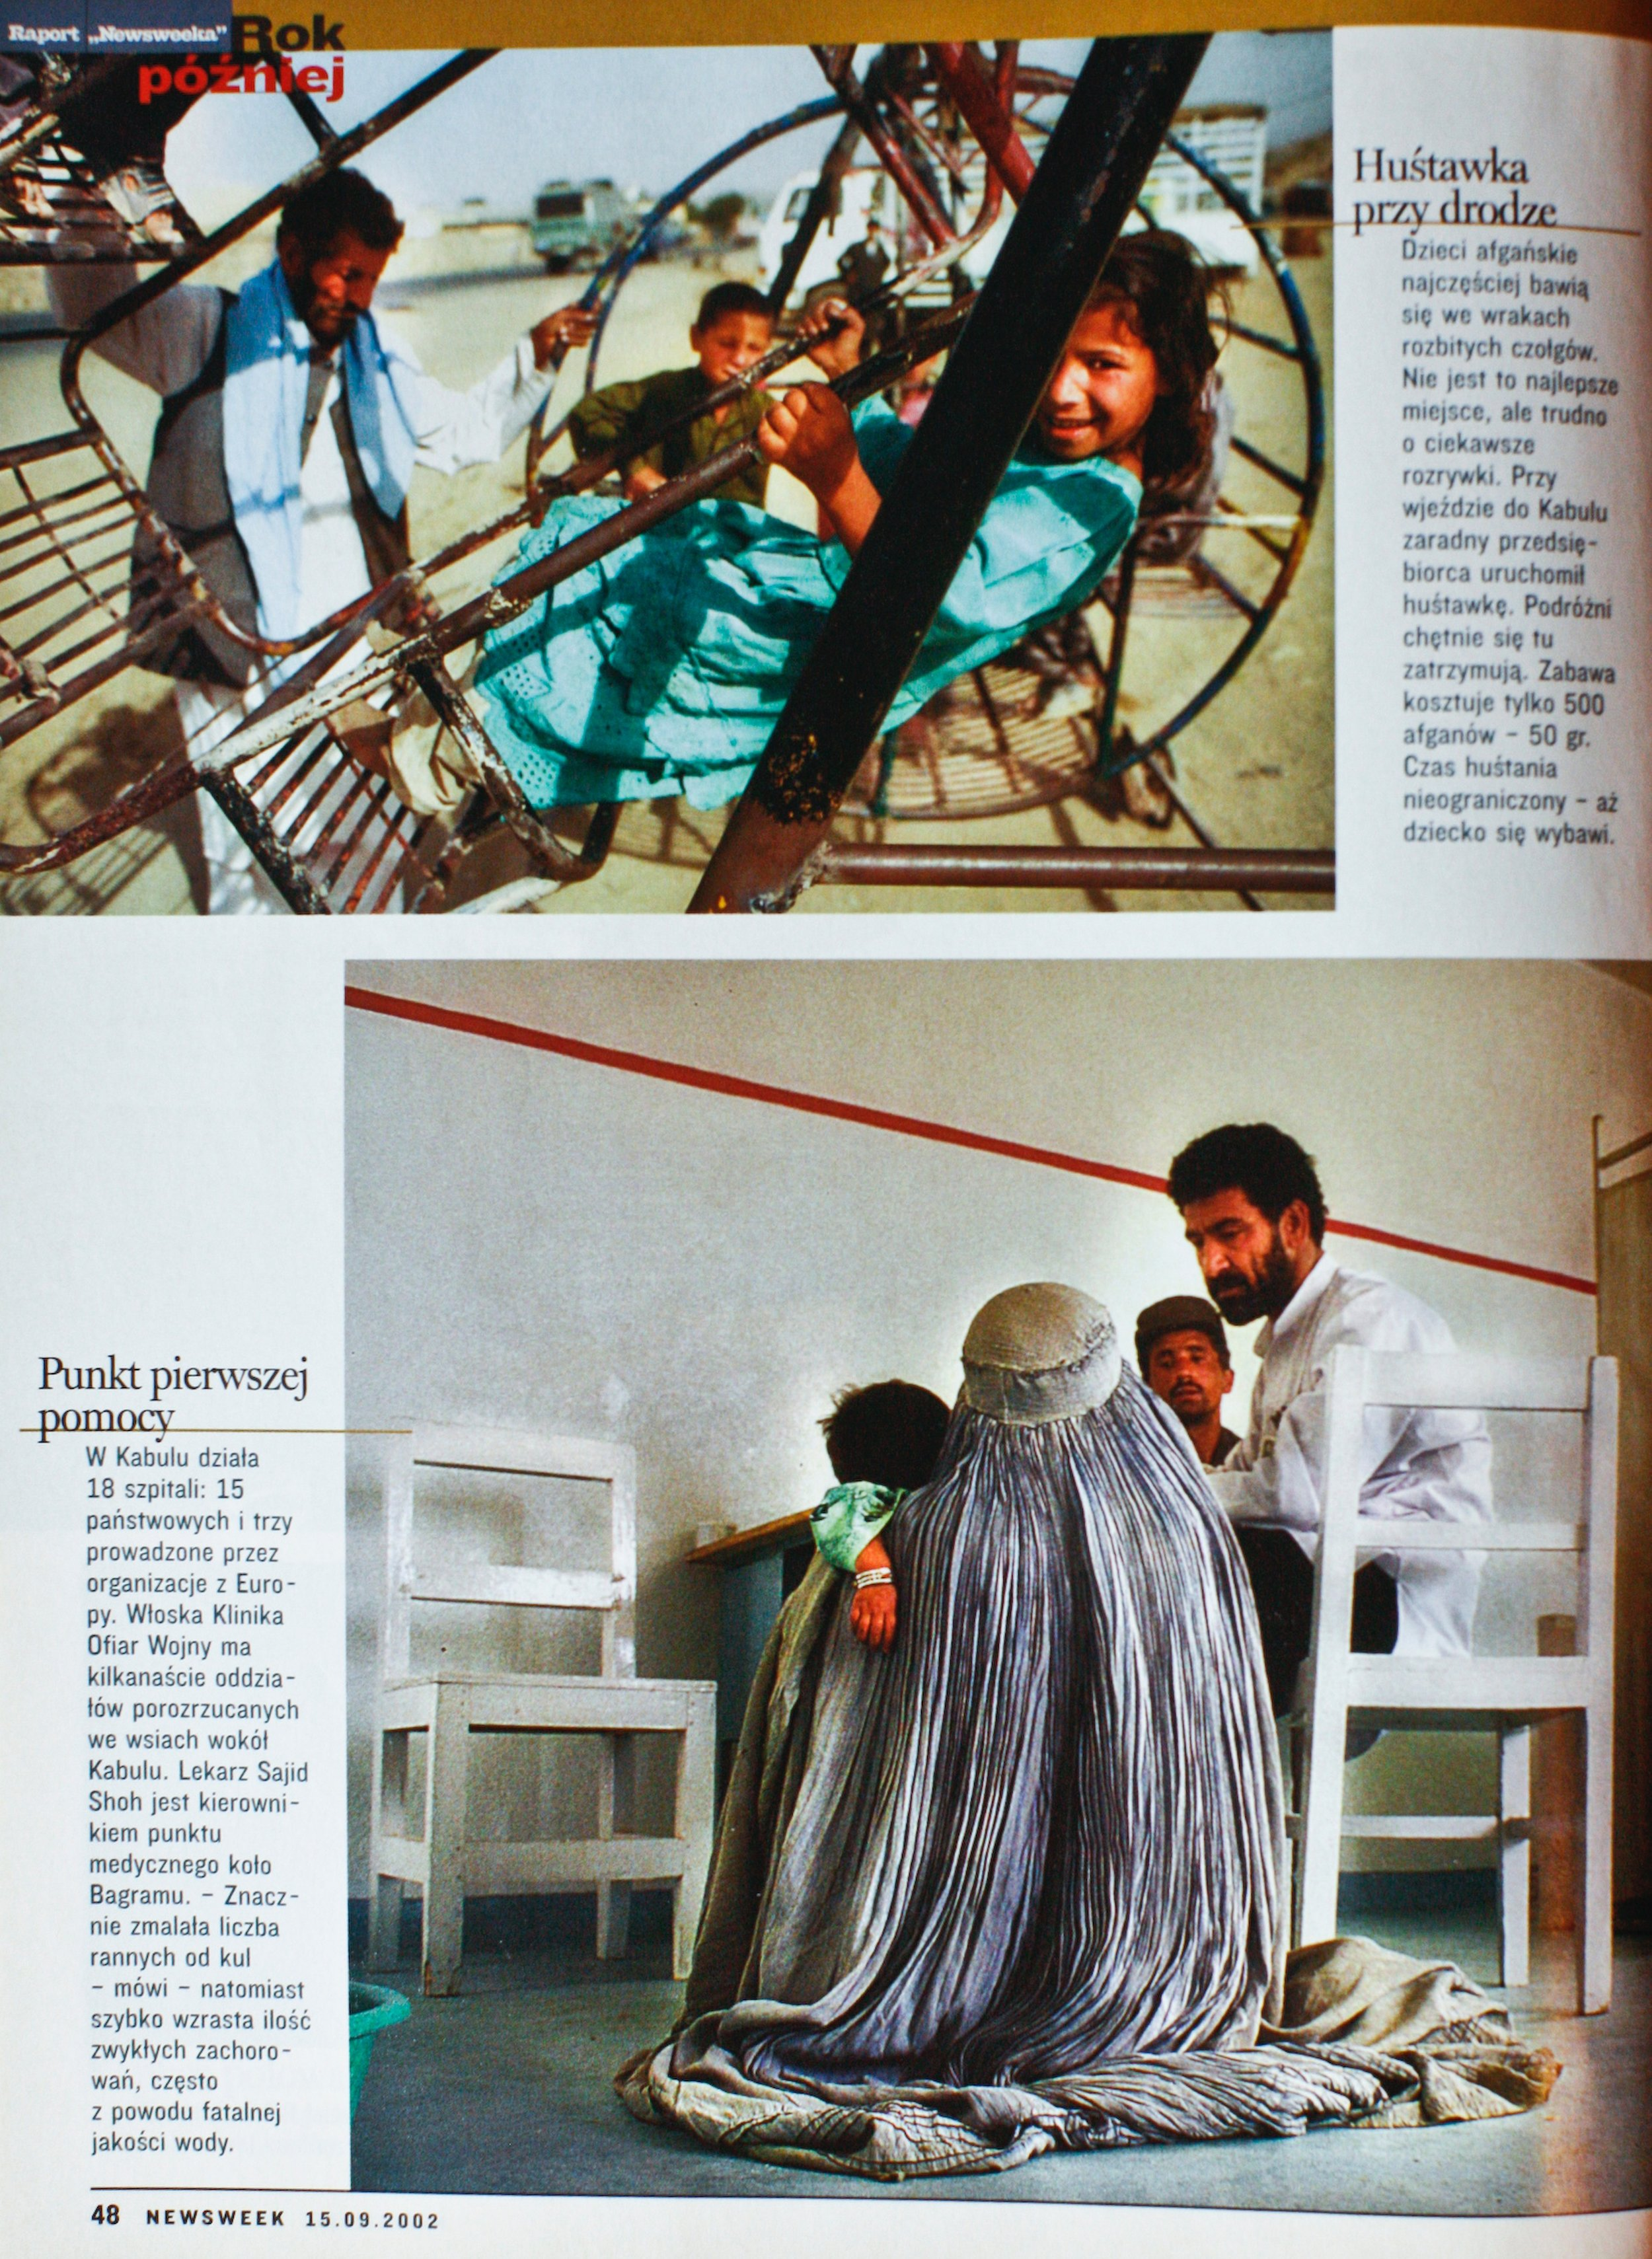 NEWSWEEK 2001 KABUL - THE TIME OF TRIAL